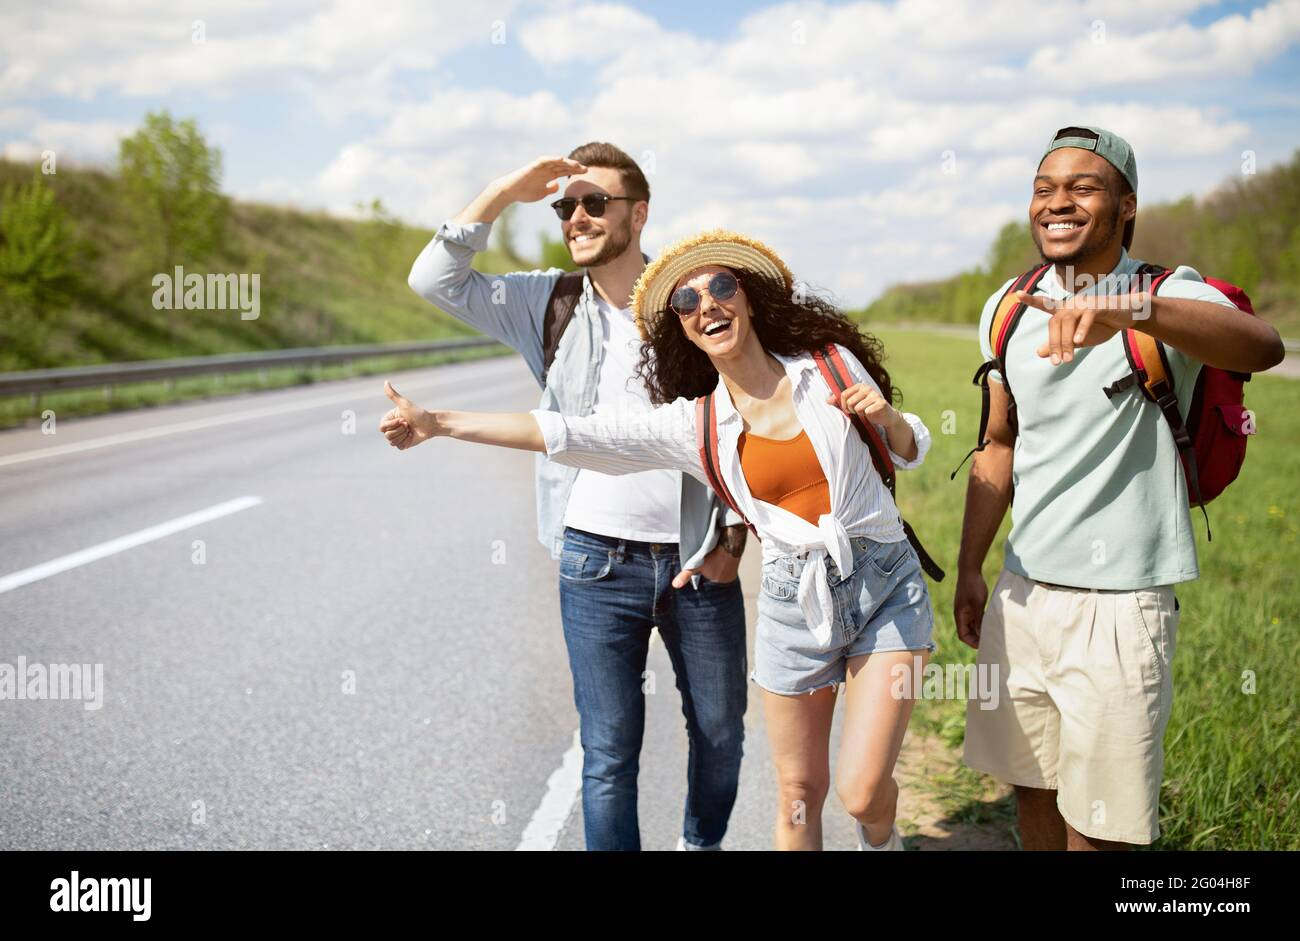 Vacation Hitchhiking High Resolution Stock Photography and Images - Alamy